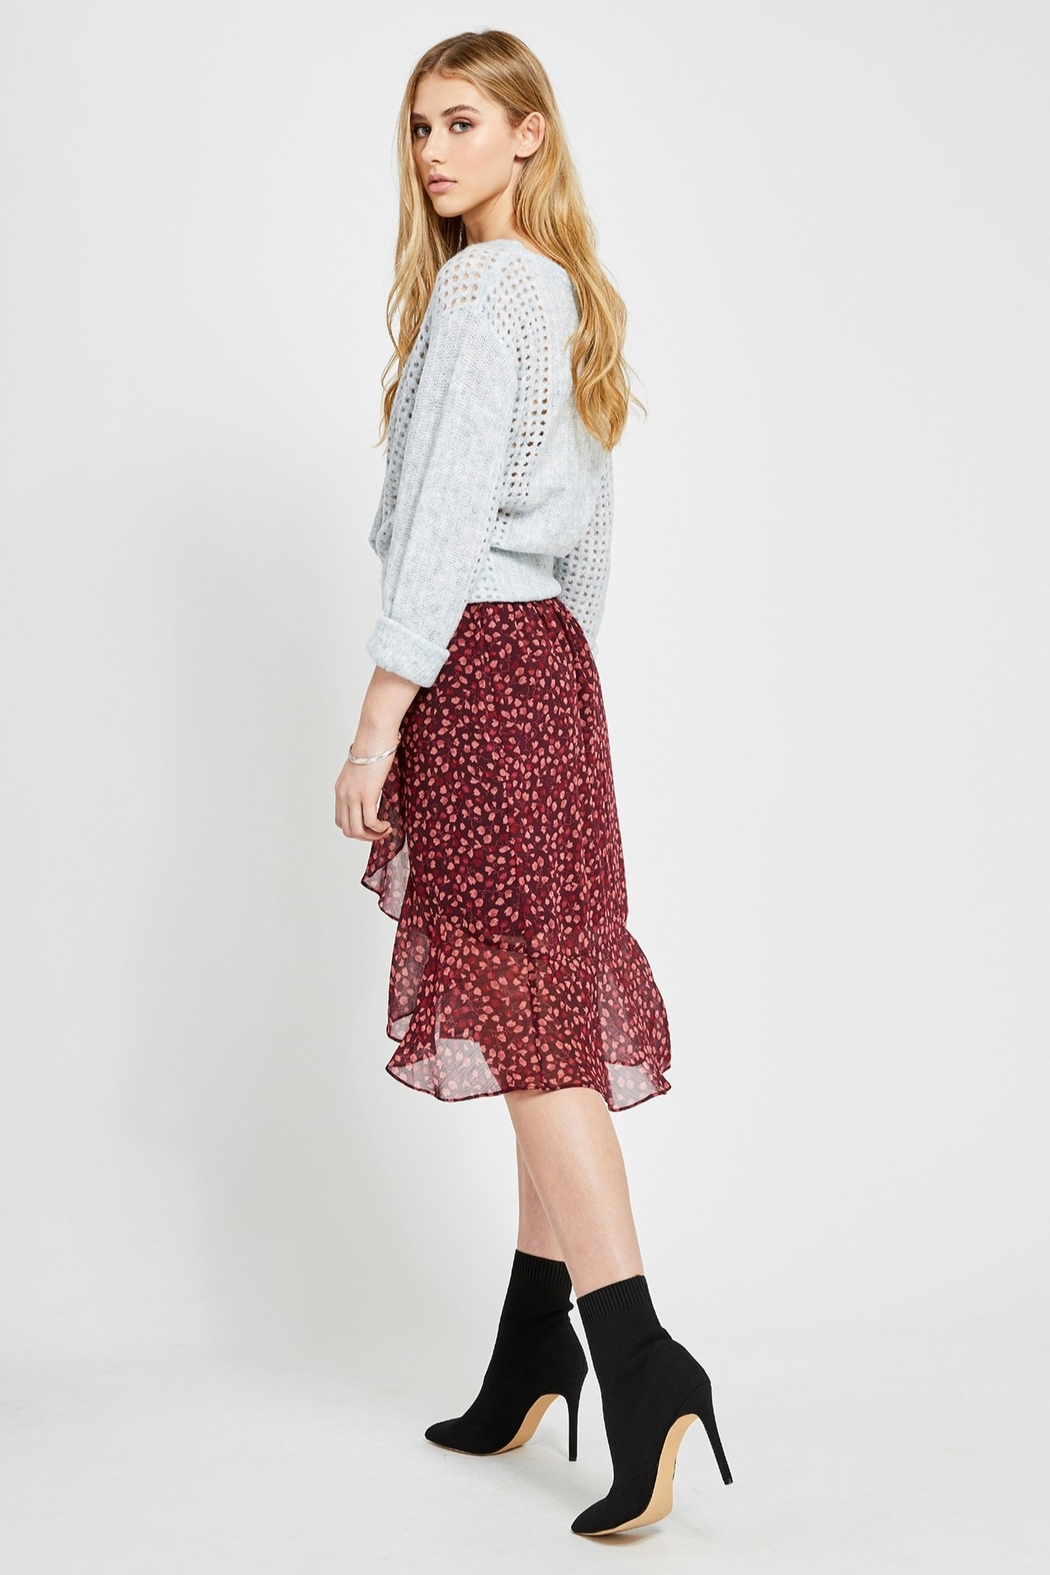 Gentle Fawn Xena Ruffle Skirt - Front Full Image